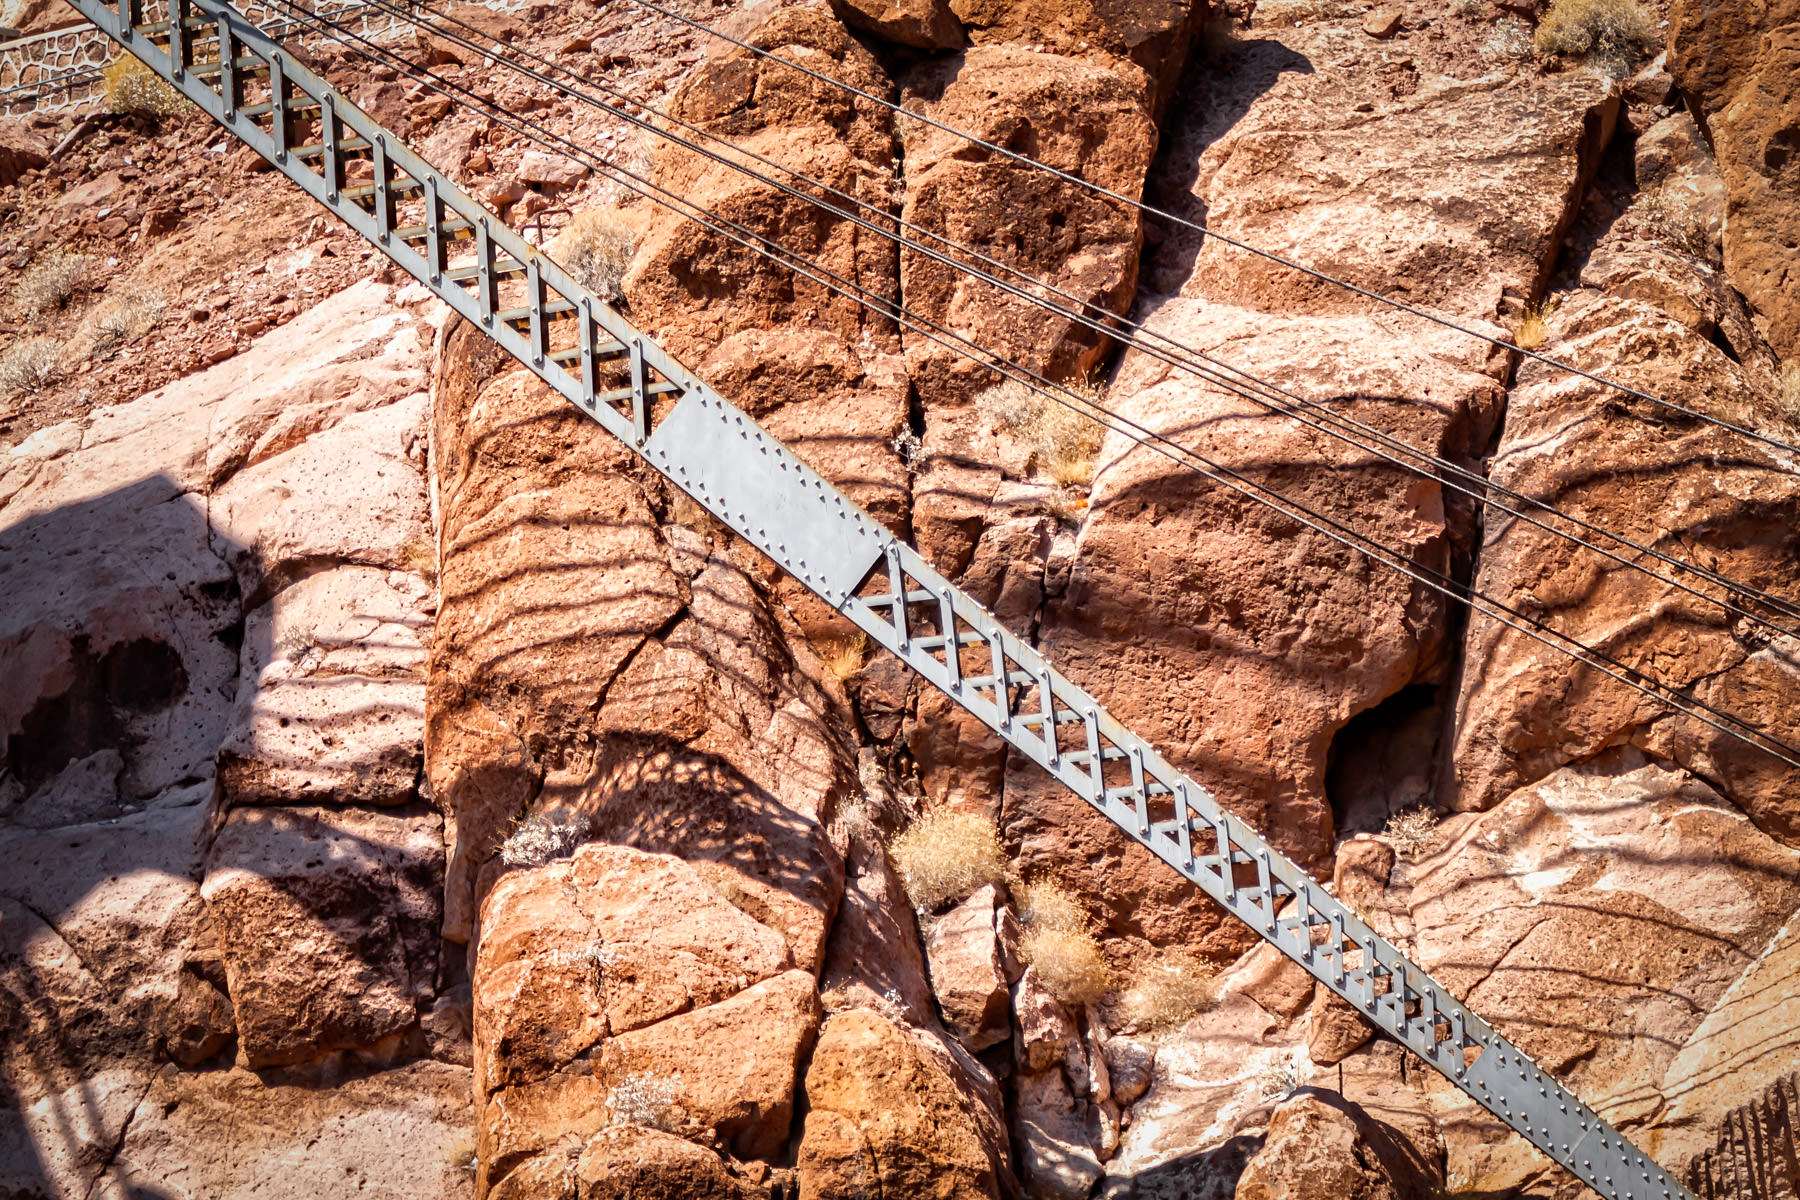 Detail of a crane at Hoover Dam, Nevada. This crane was one of the original cranes used during construction of the dam in the 1930s.